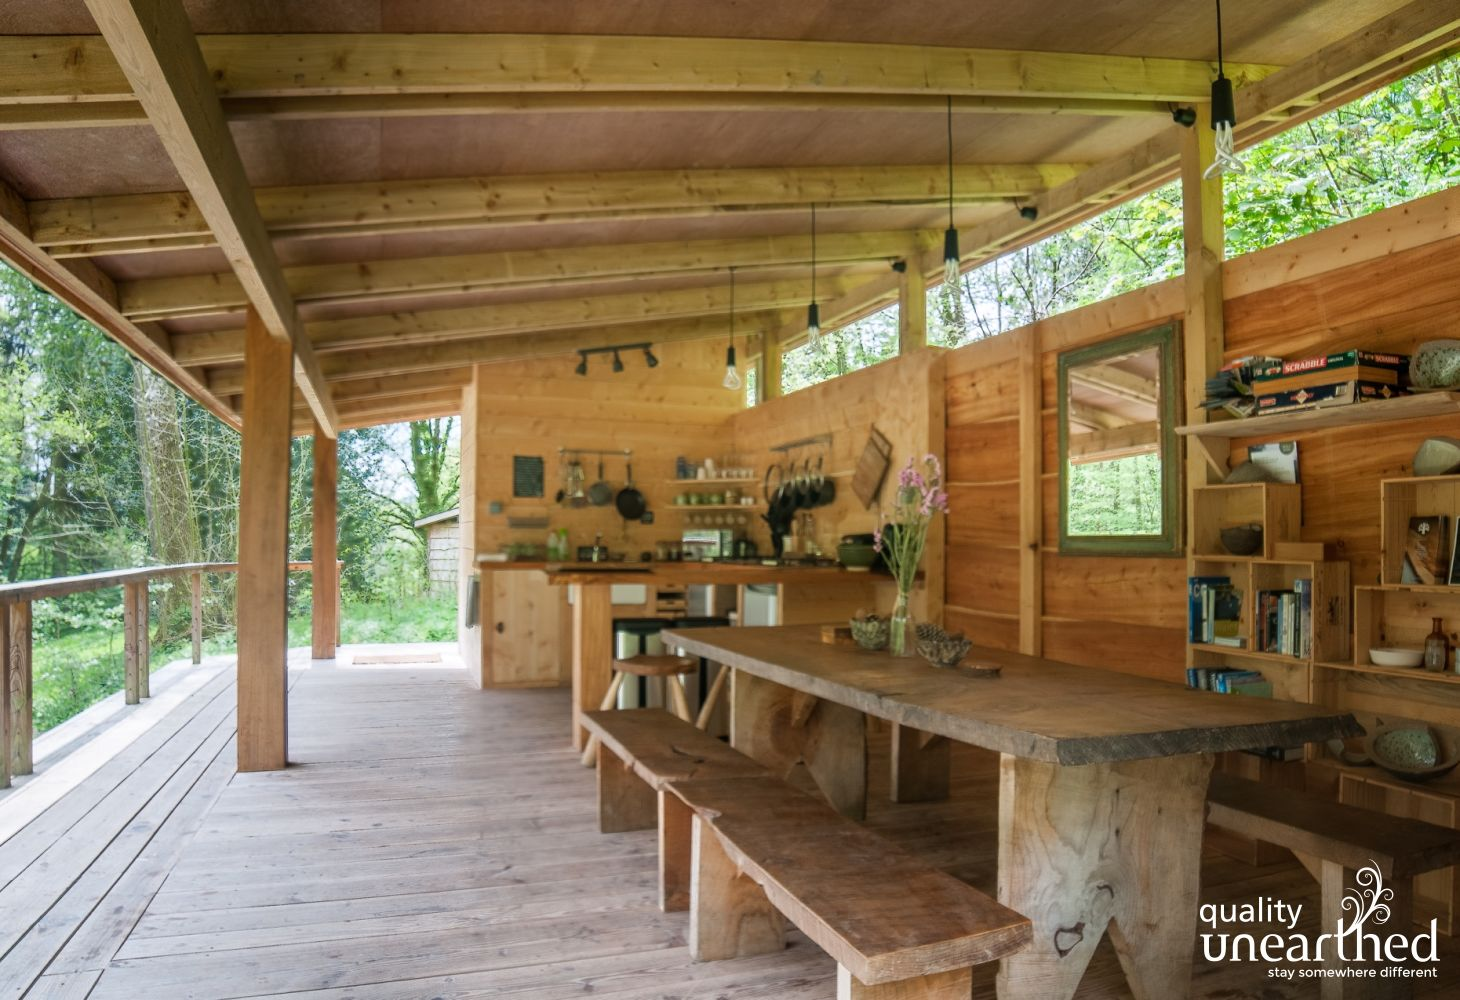 This shows the long trestle table shared by the 2 yurts and the cabin